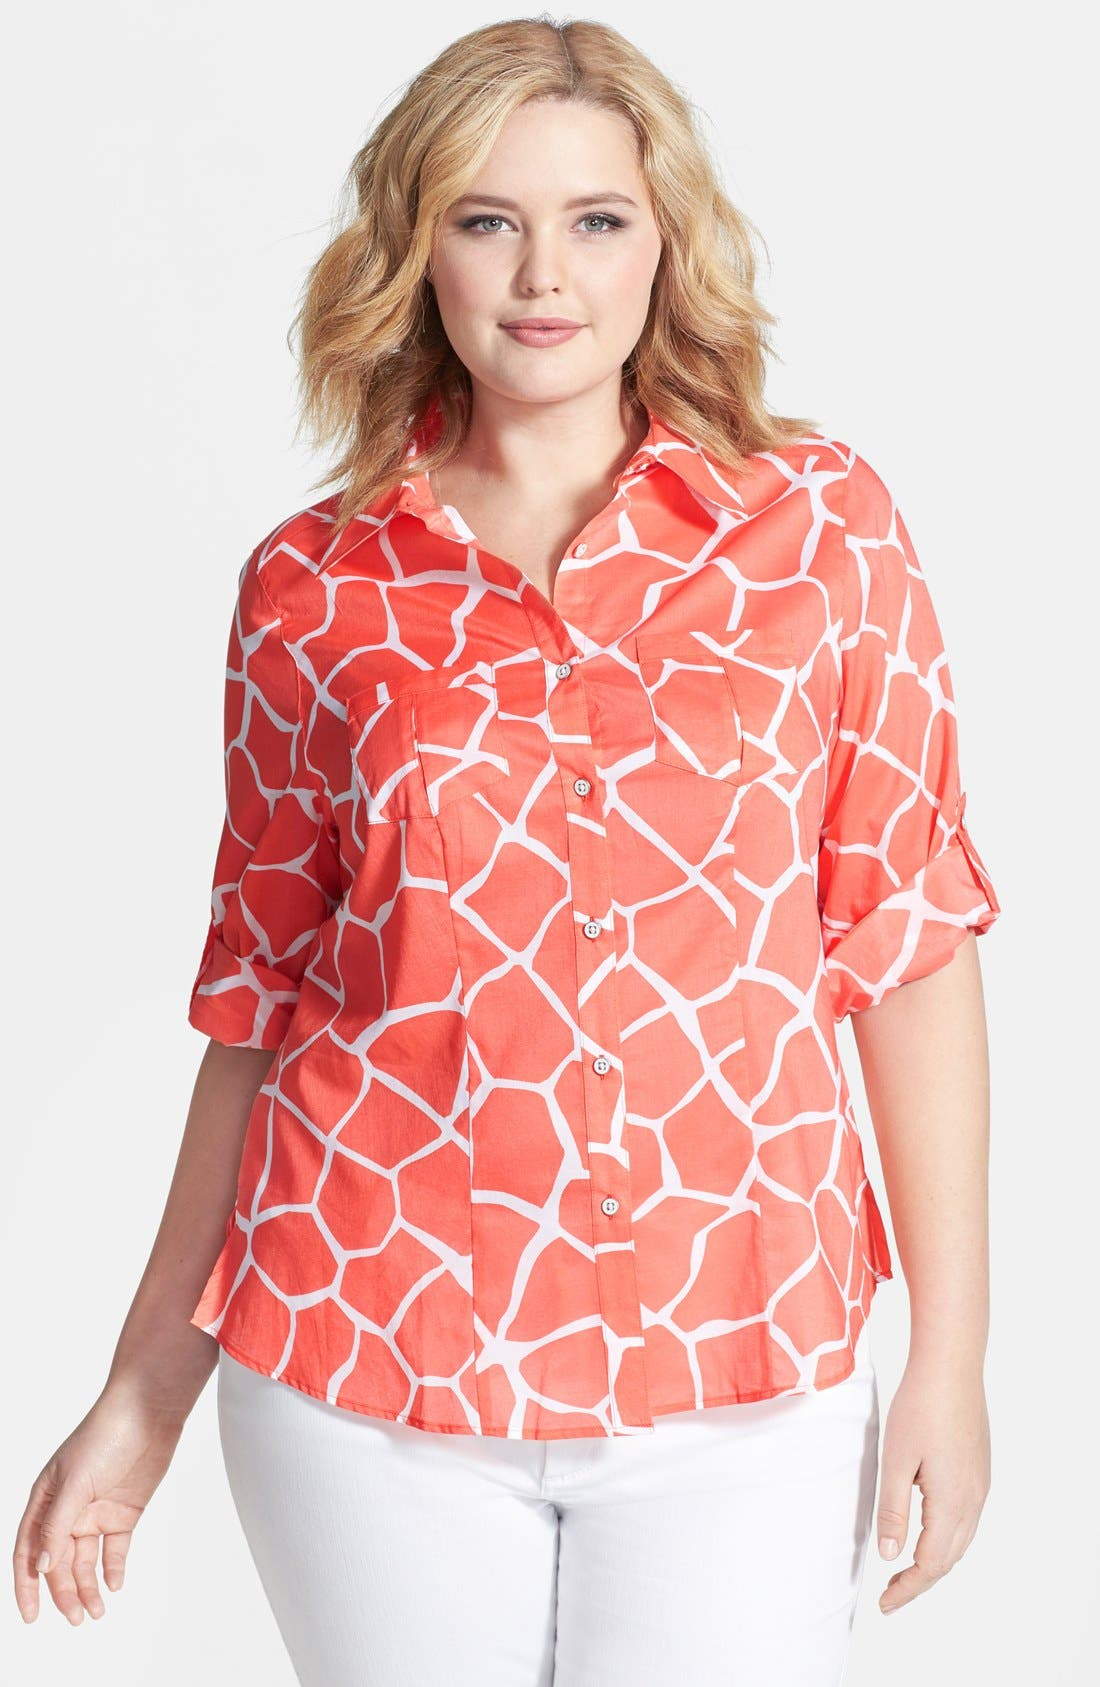 Main Image - Foxcroft Fitted Giraffe Print Cotton Roll Sleeve Shirt (Plus Size)